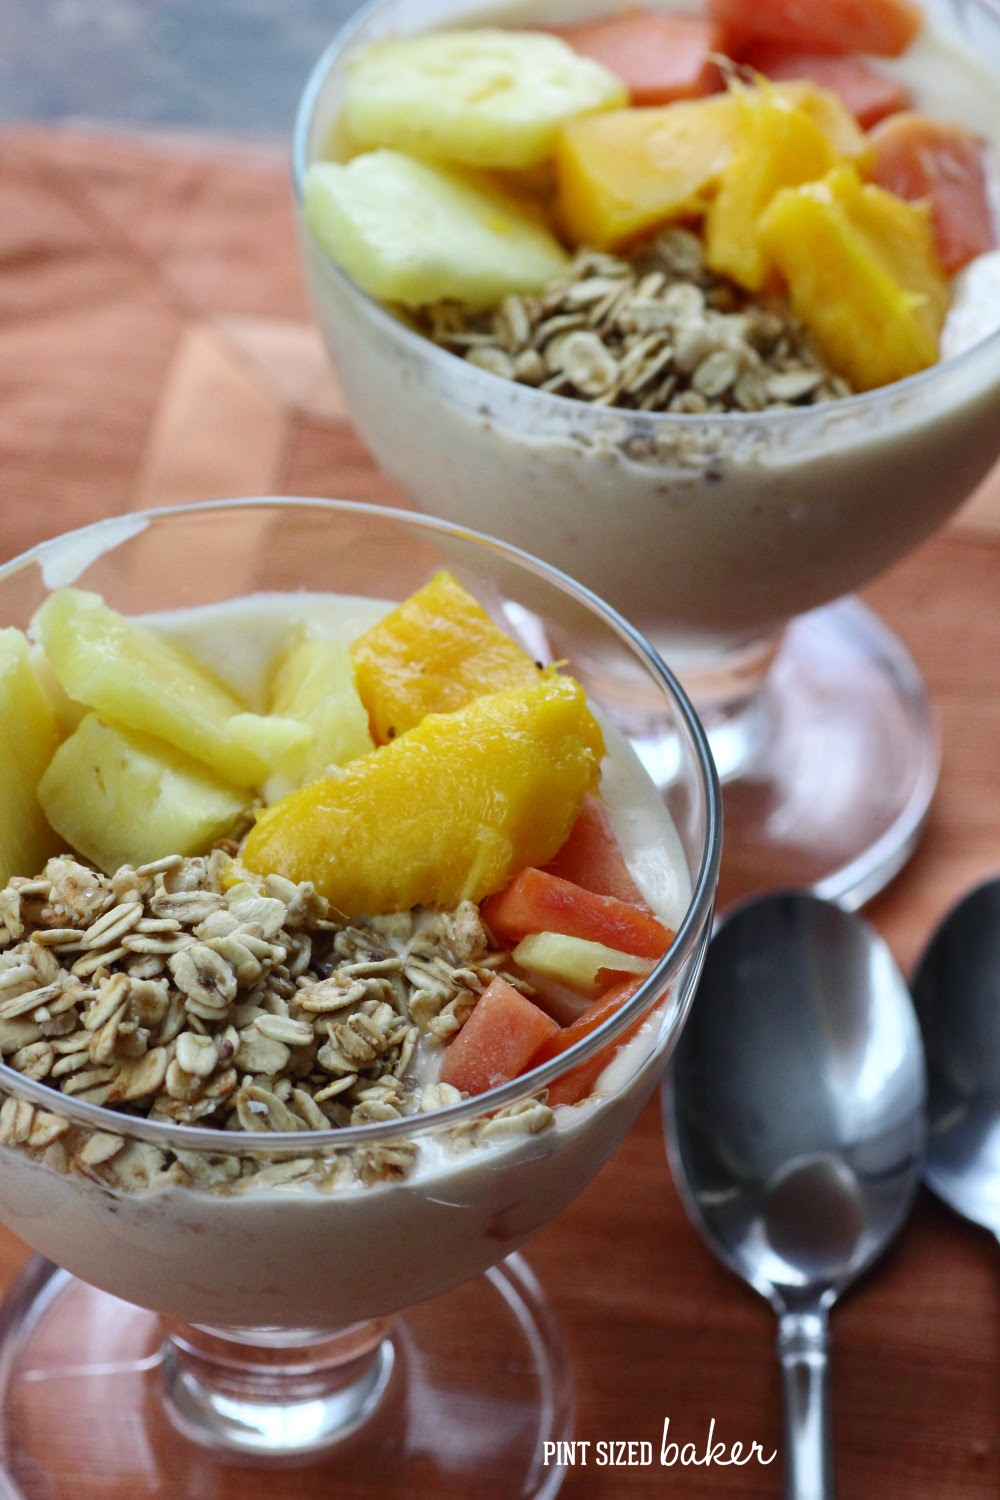 I'm loving these tropical smoothie bowls with fresh pineapple, mango, and papaya with added crunchy granola. It's a great way to fuel up to get the day going.